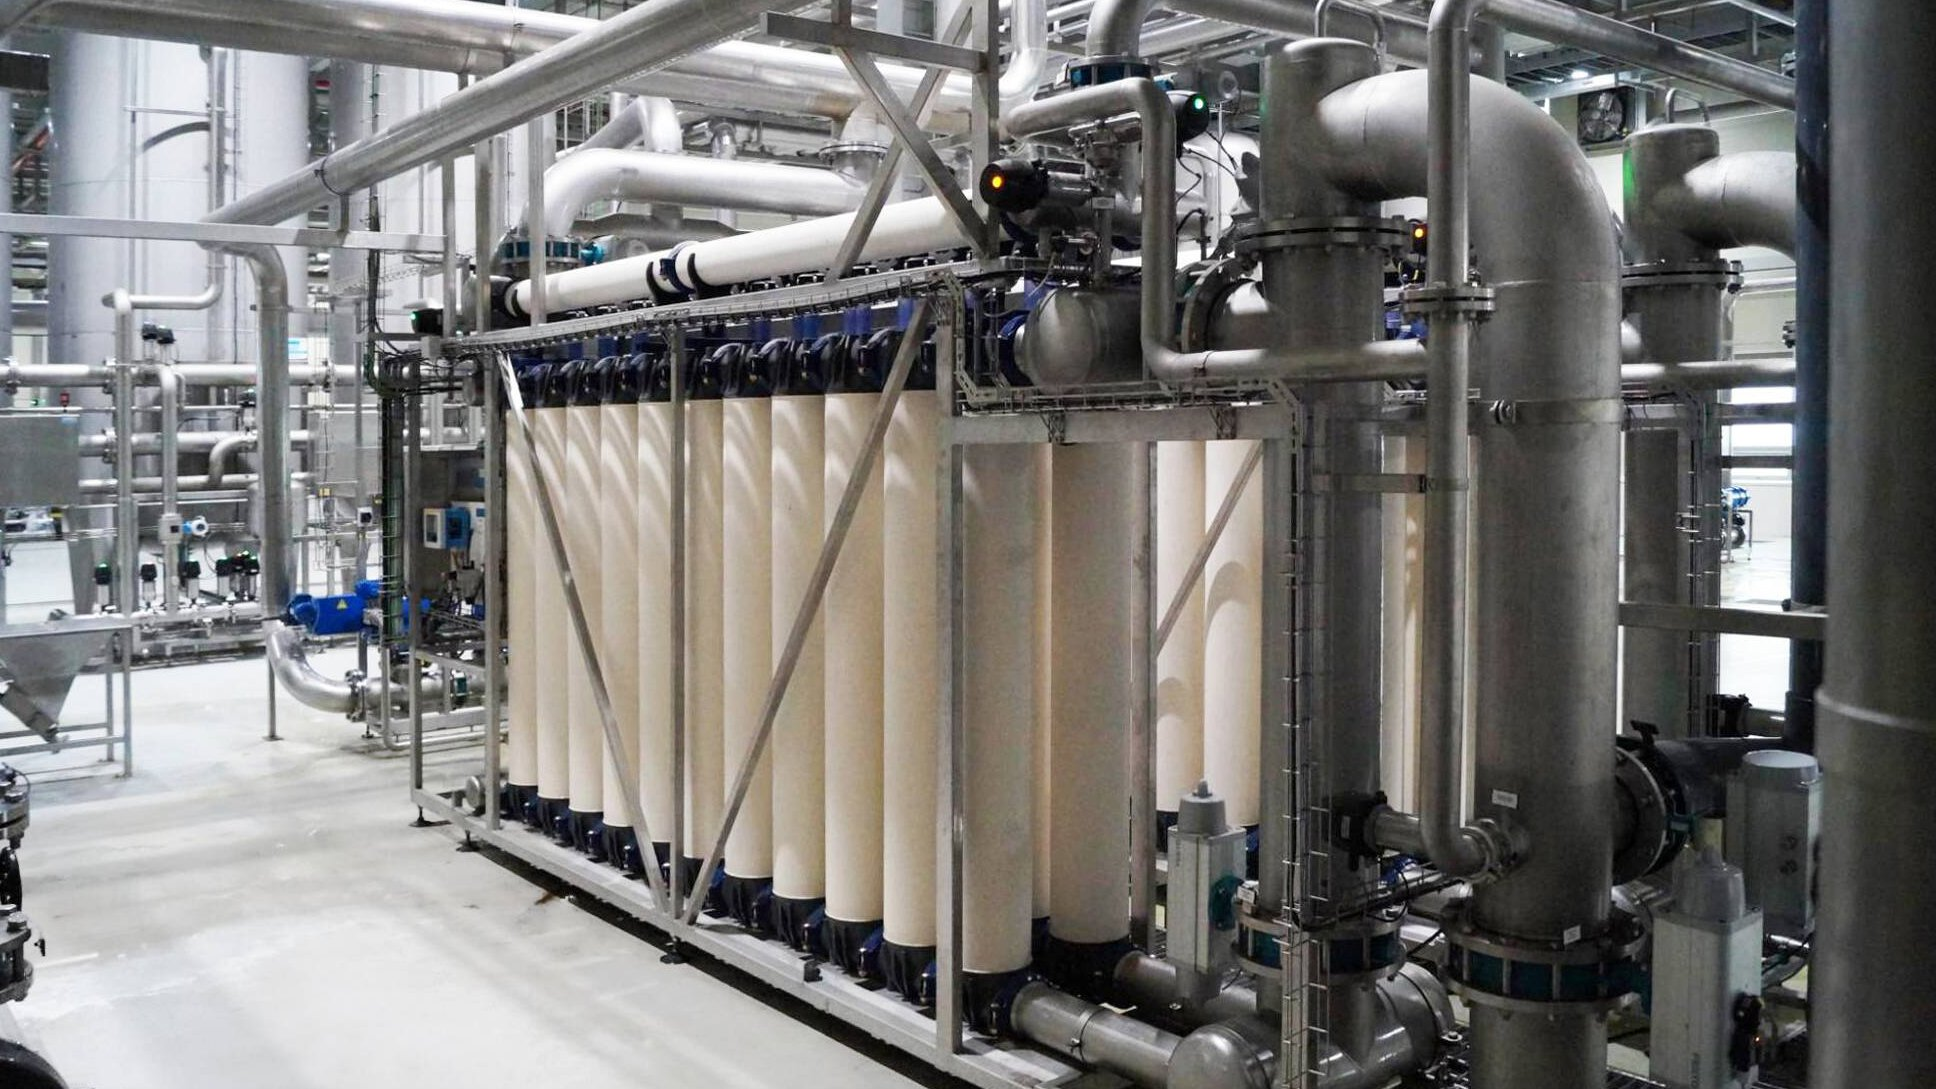 Gallery image 0 - Brewery in Korea, Ultrafiltration, 6.200 m³/d